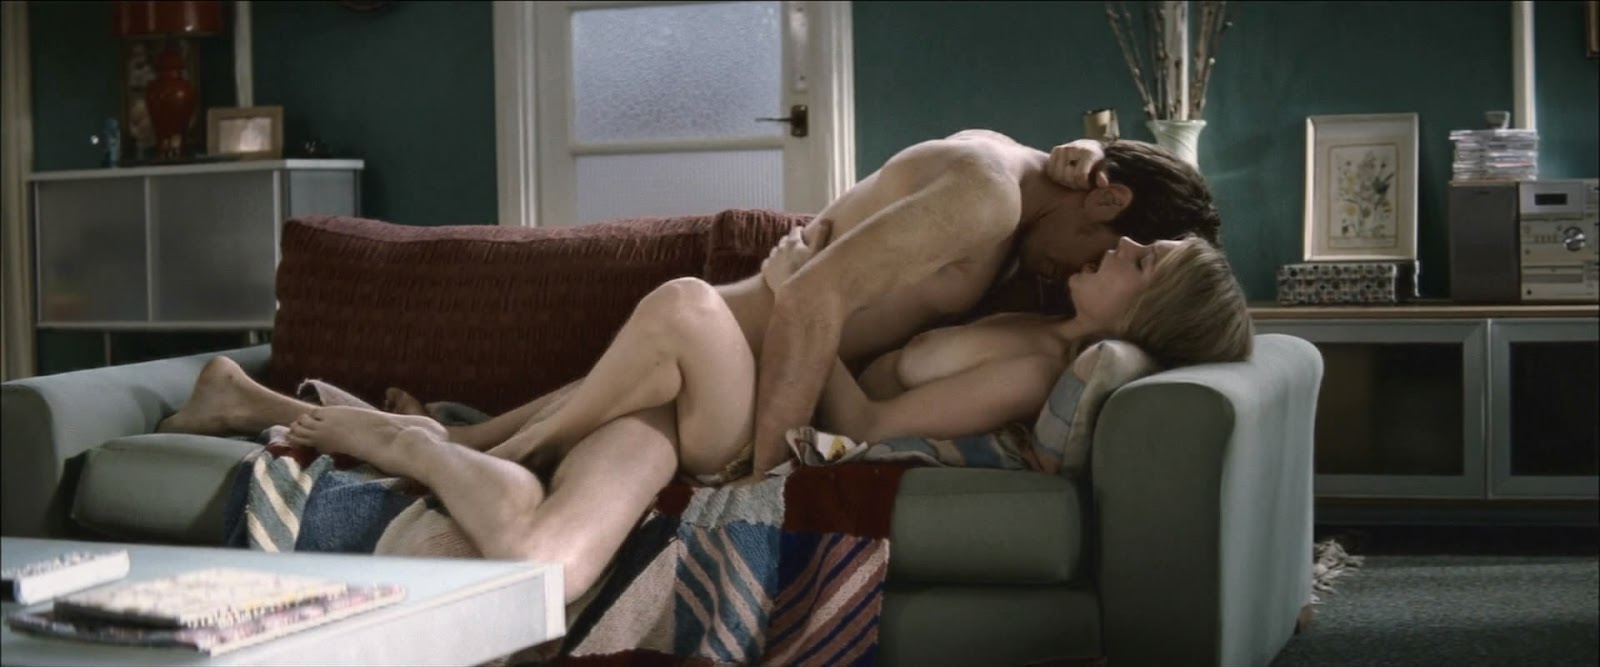 Michelle williams sexy scene agree, remarkable